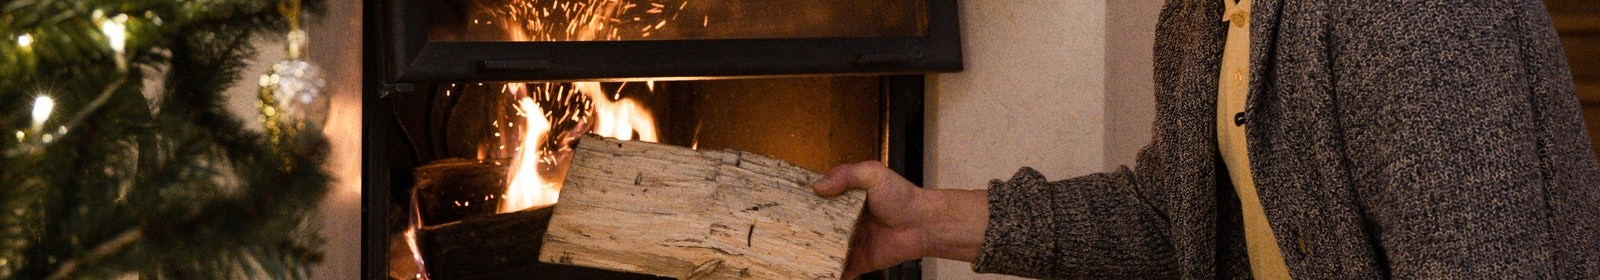 Add value to your home with the right choice of fireplace